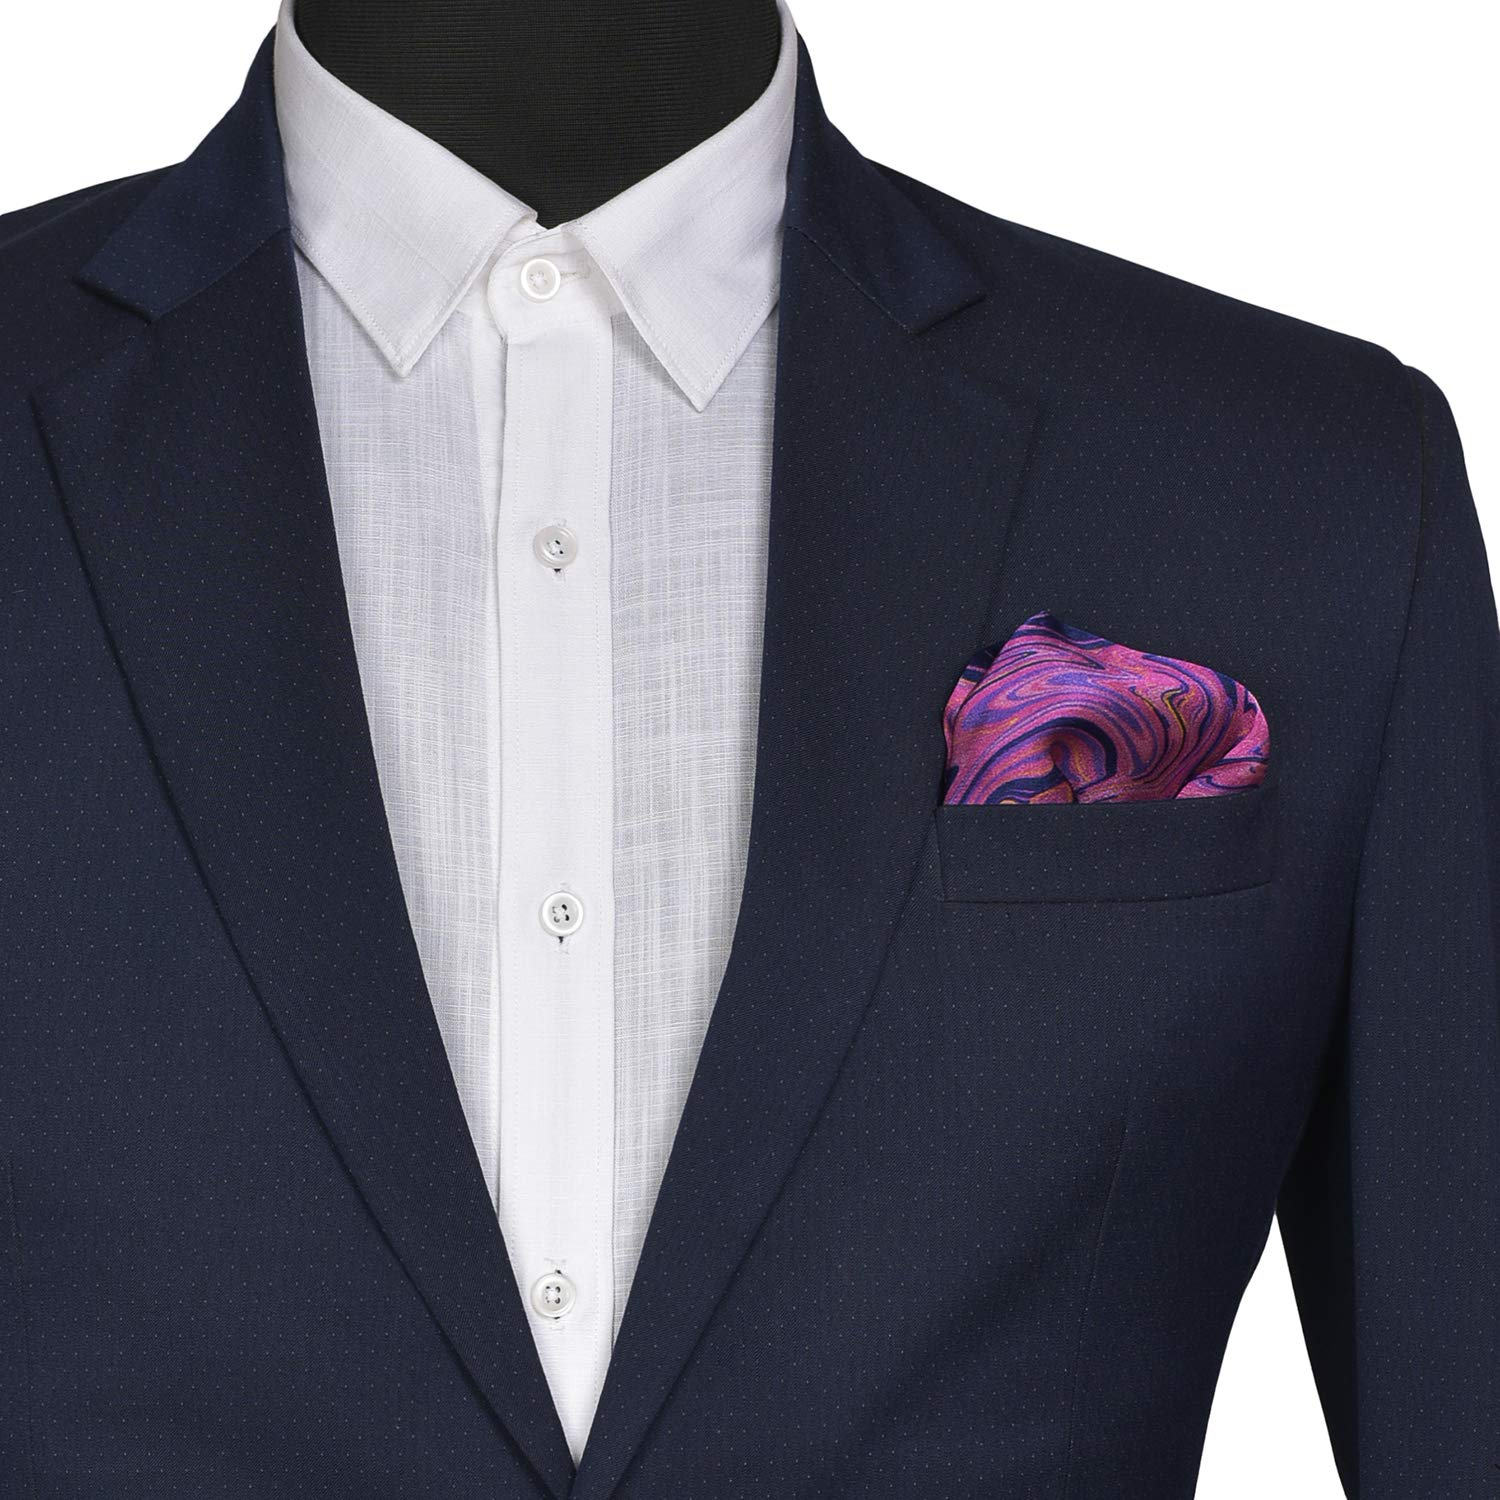 Chokore Navy blue /& purple Silk Pocket Square from the Marble Design range/_ MB81401/_53AC